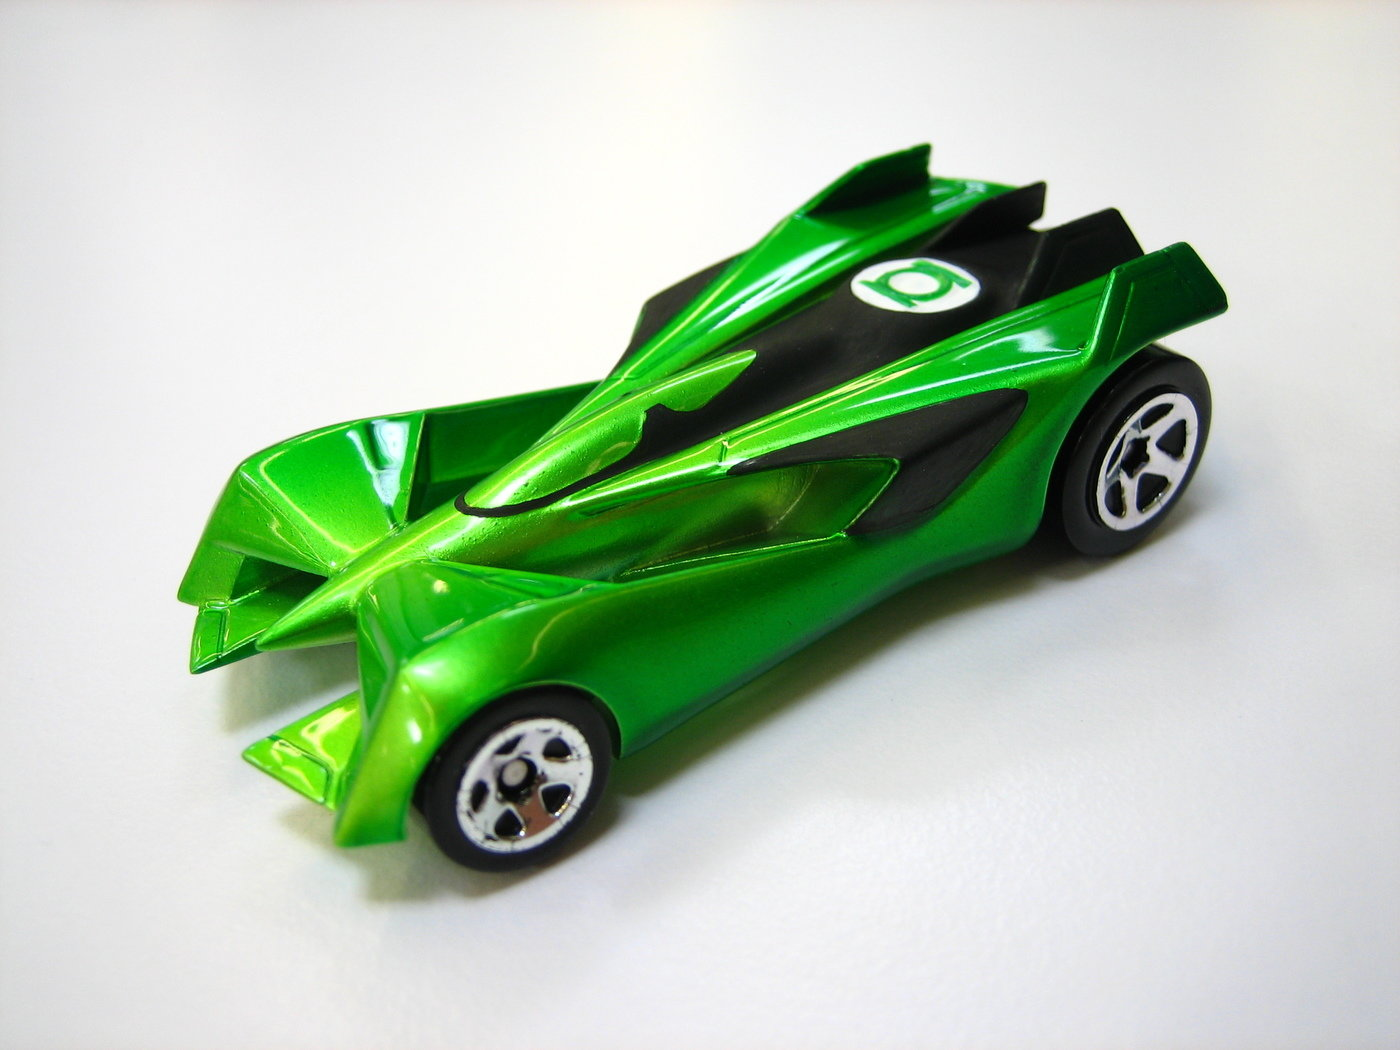 hotwheels dc universe character cars by vaughan ling at